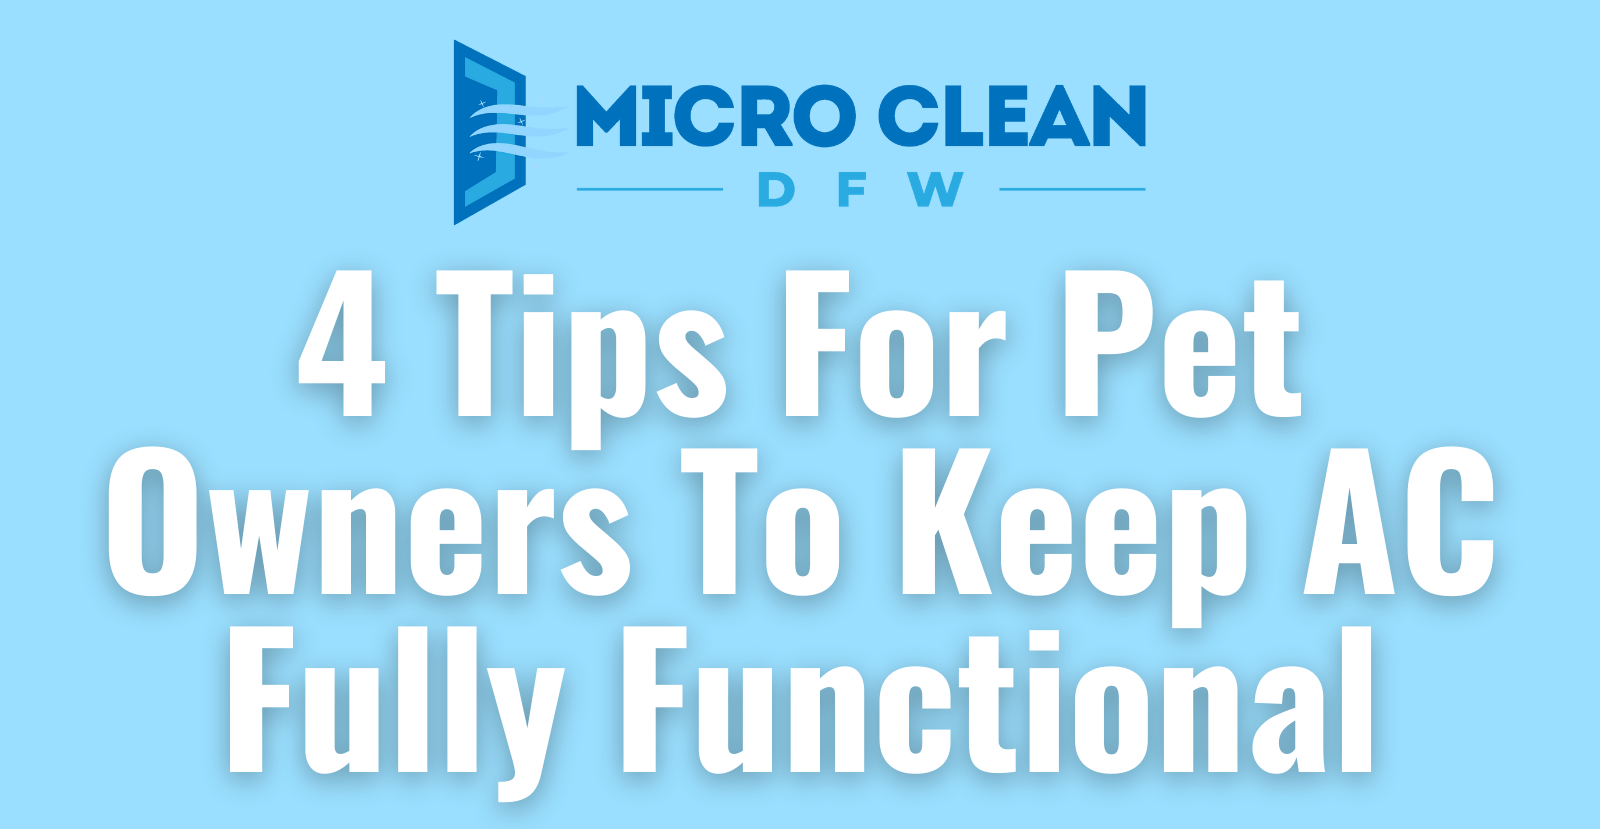 4 Tips For Pet Owners To Keep AC Fully Functional